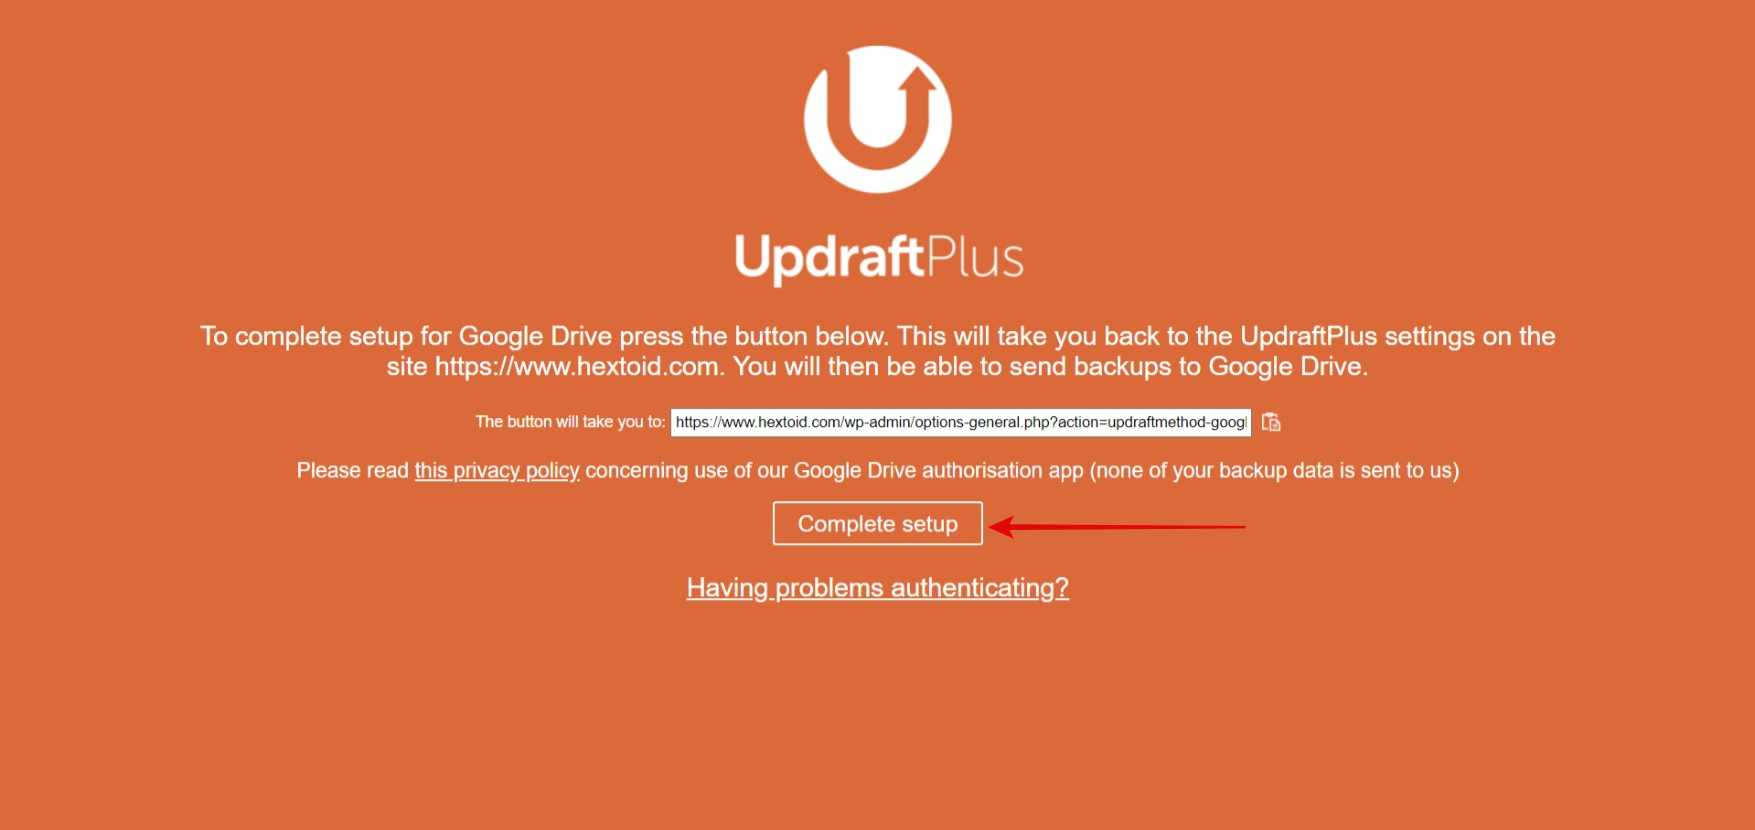 Authorize your Google account and click Complete setup